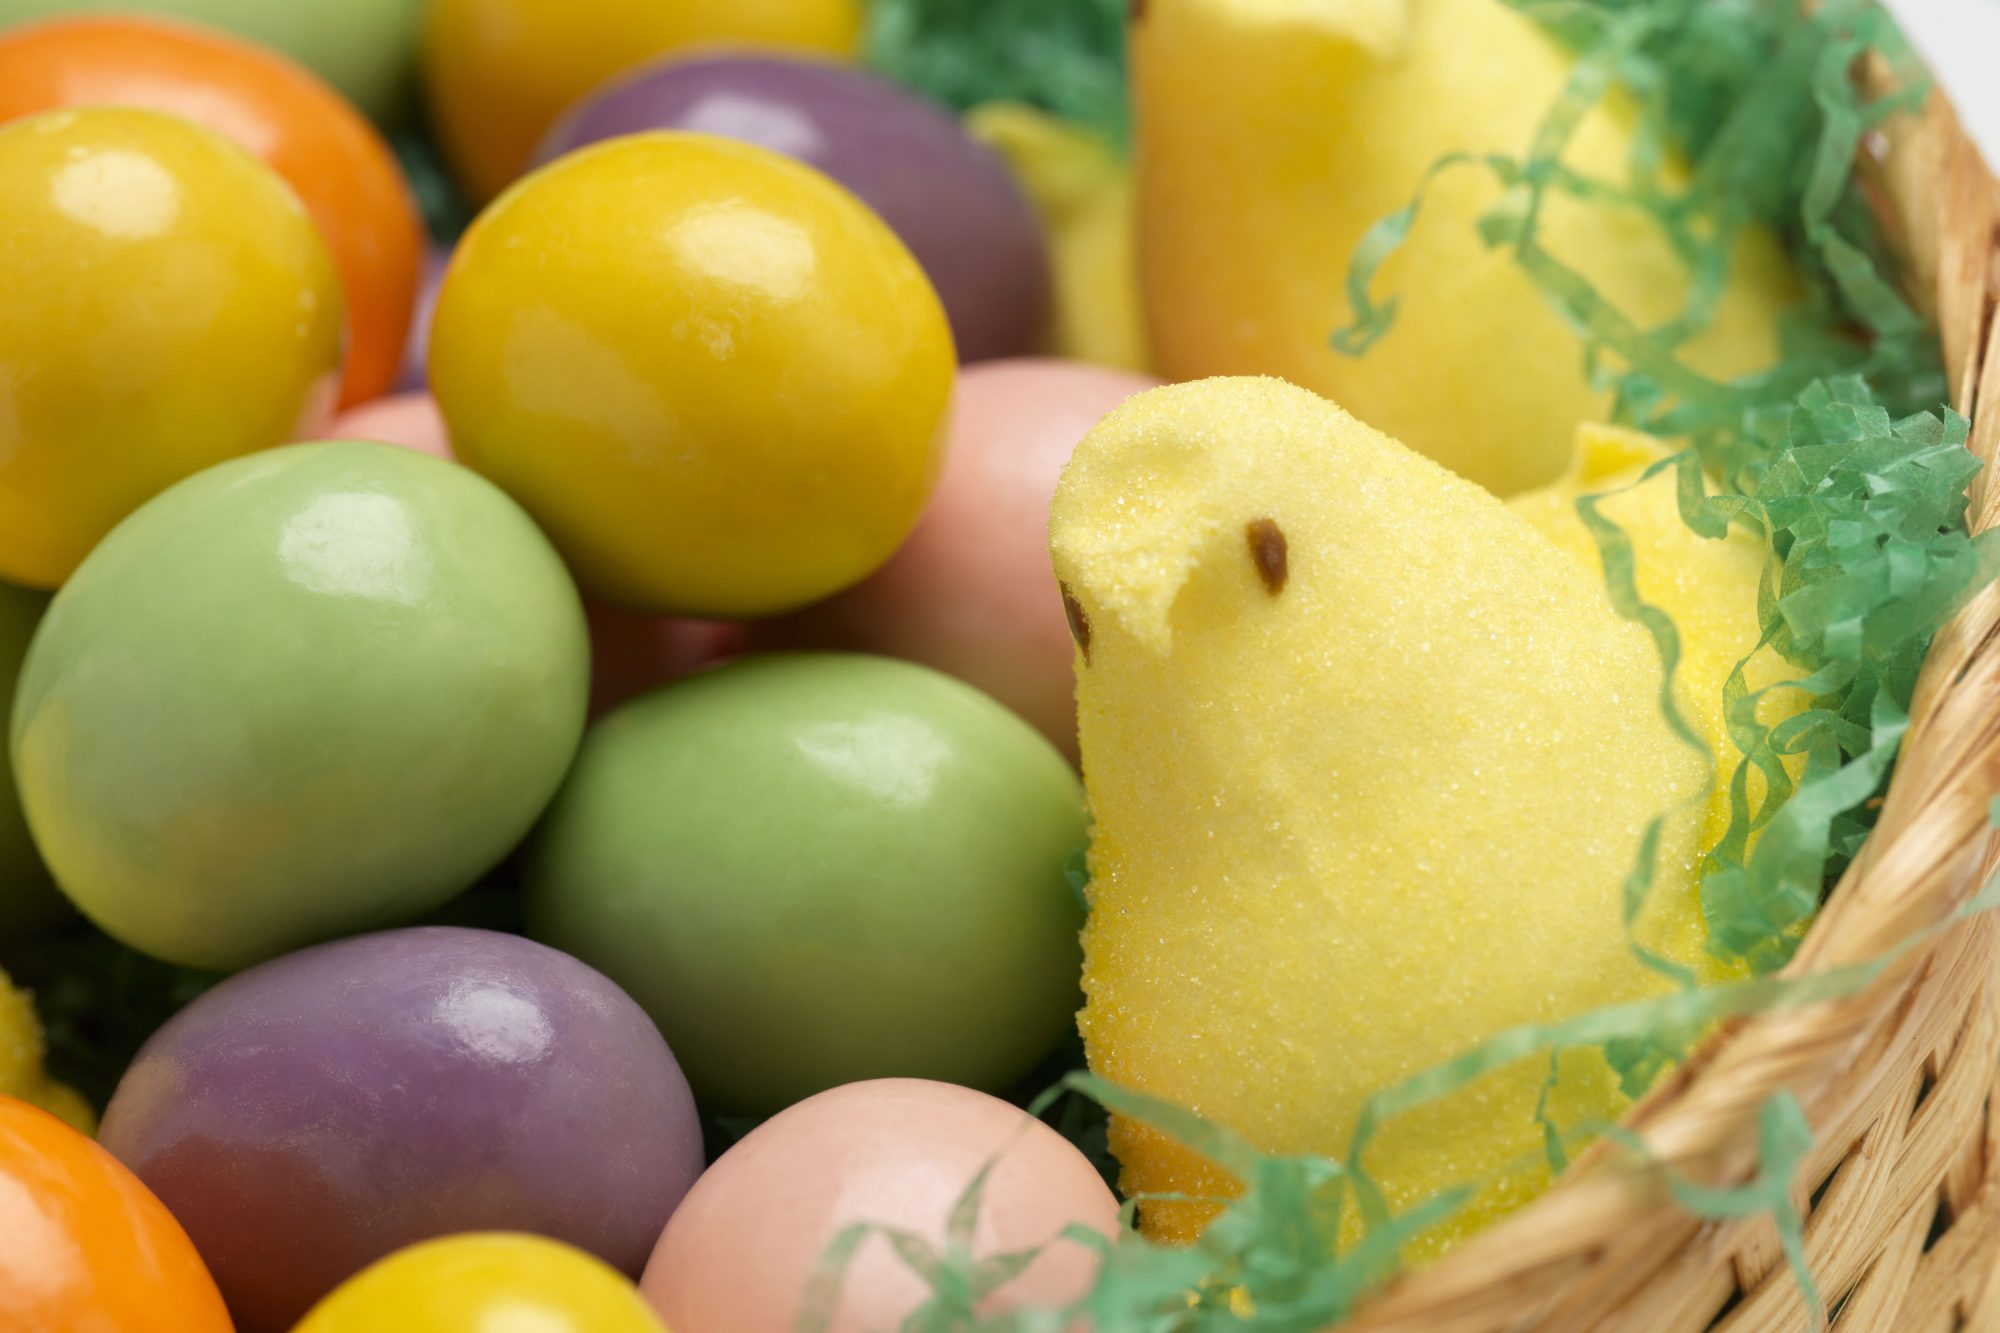 Peeps Unveils 8 Wild New Flavors Just in Time for Easter